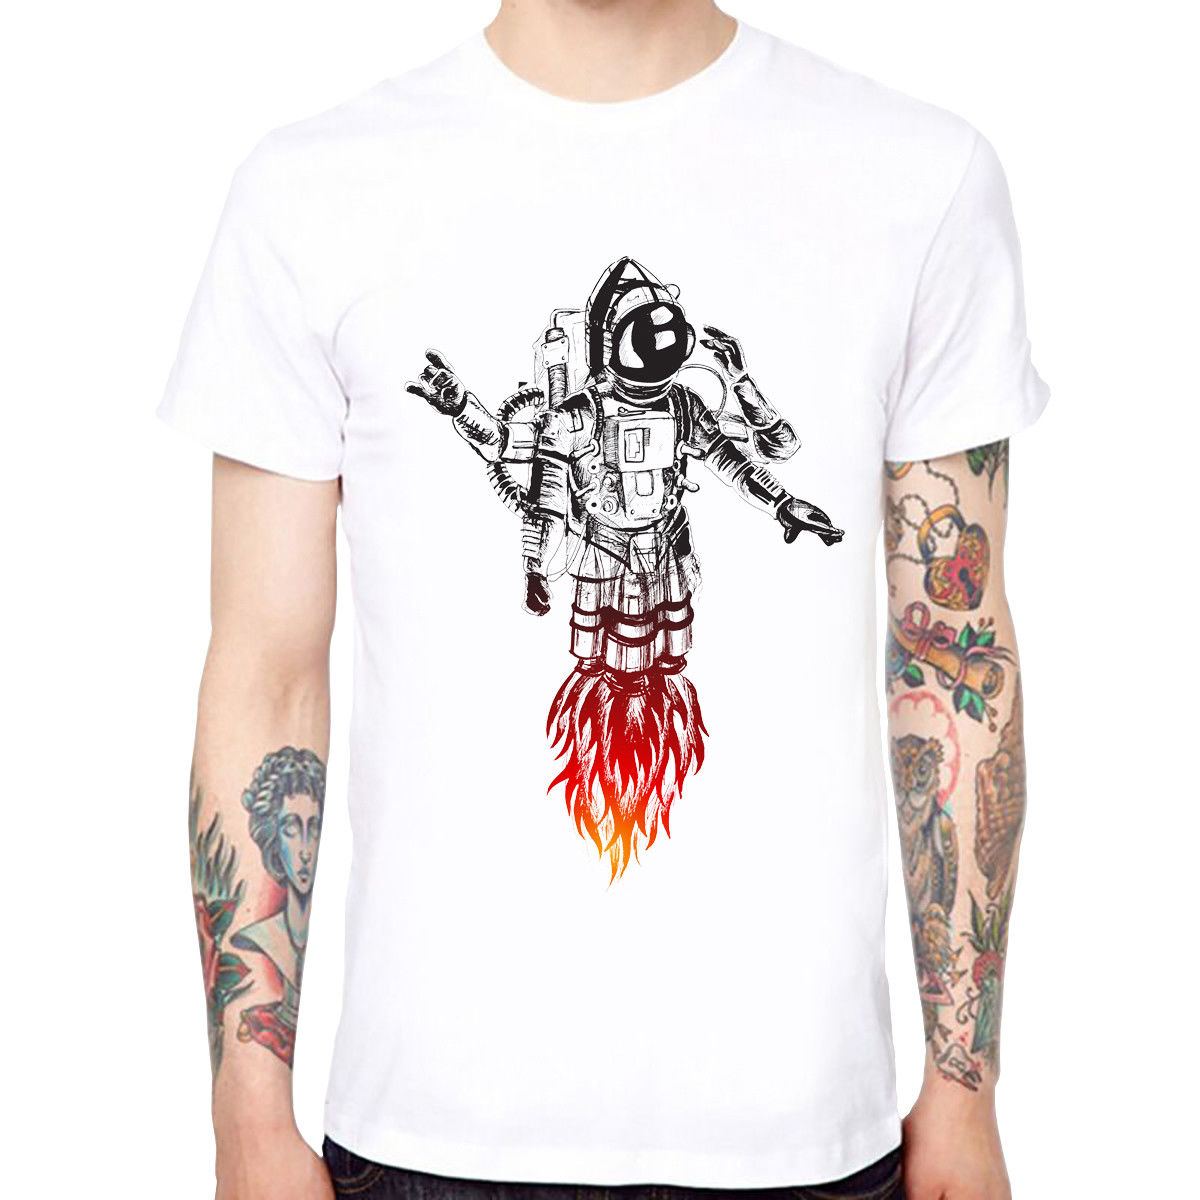 Launched Off Mens Soft Cotton Funny Cool T-shirts Short Sleeve Tops Tee Print T-Shirt Summer Style Top Tee Men Clothing